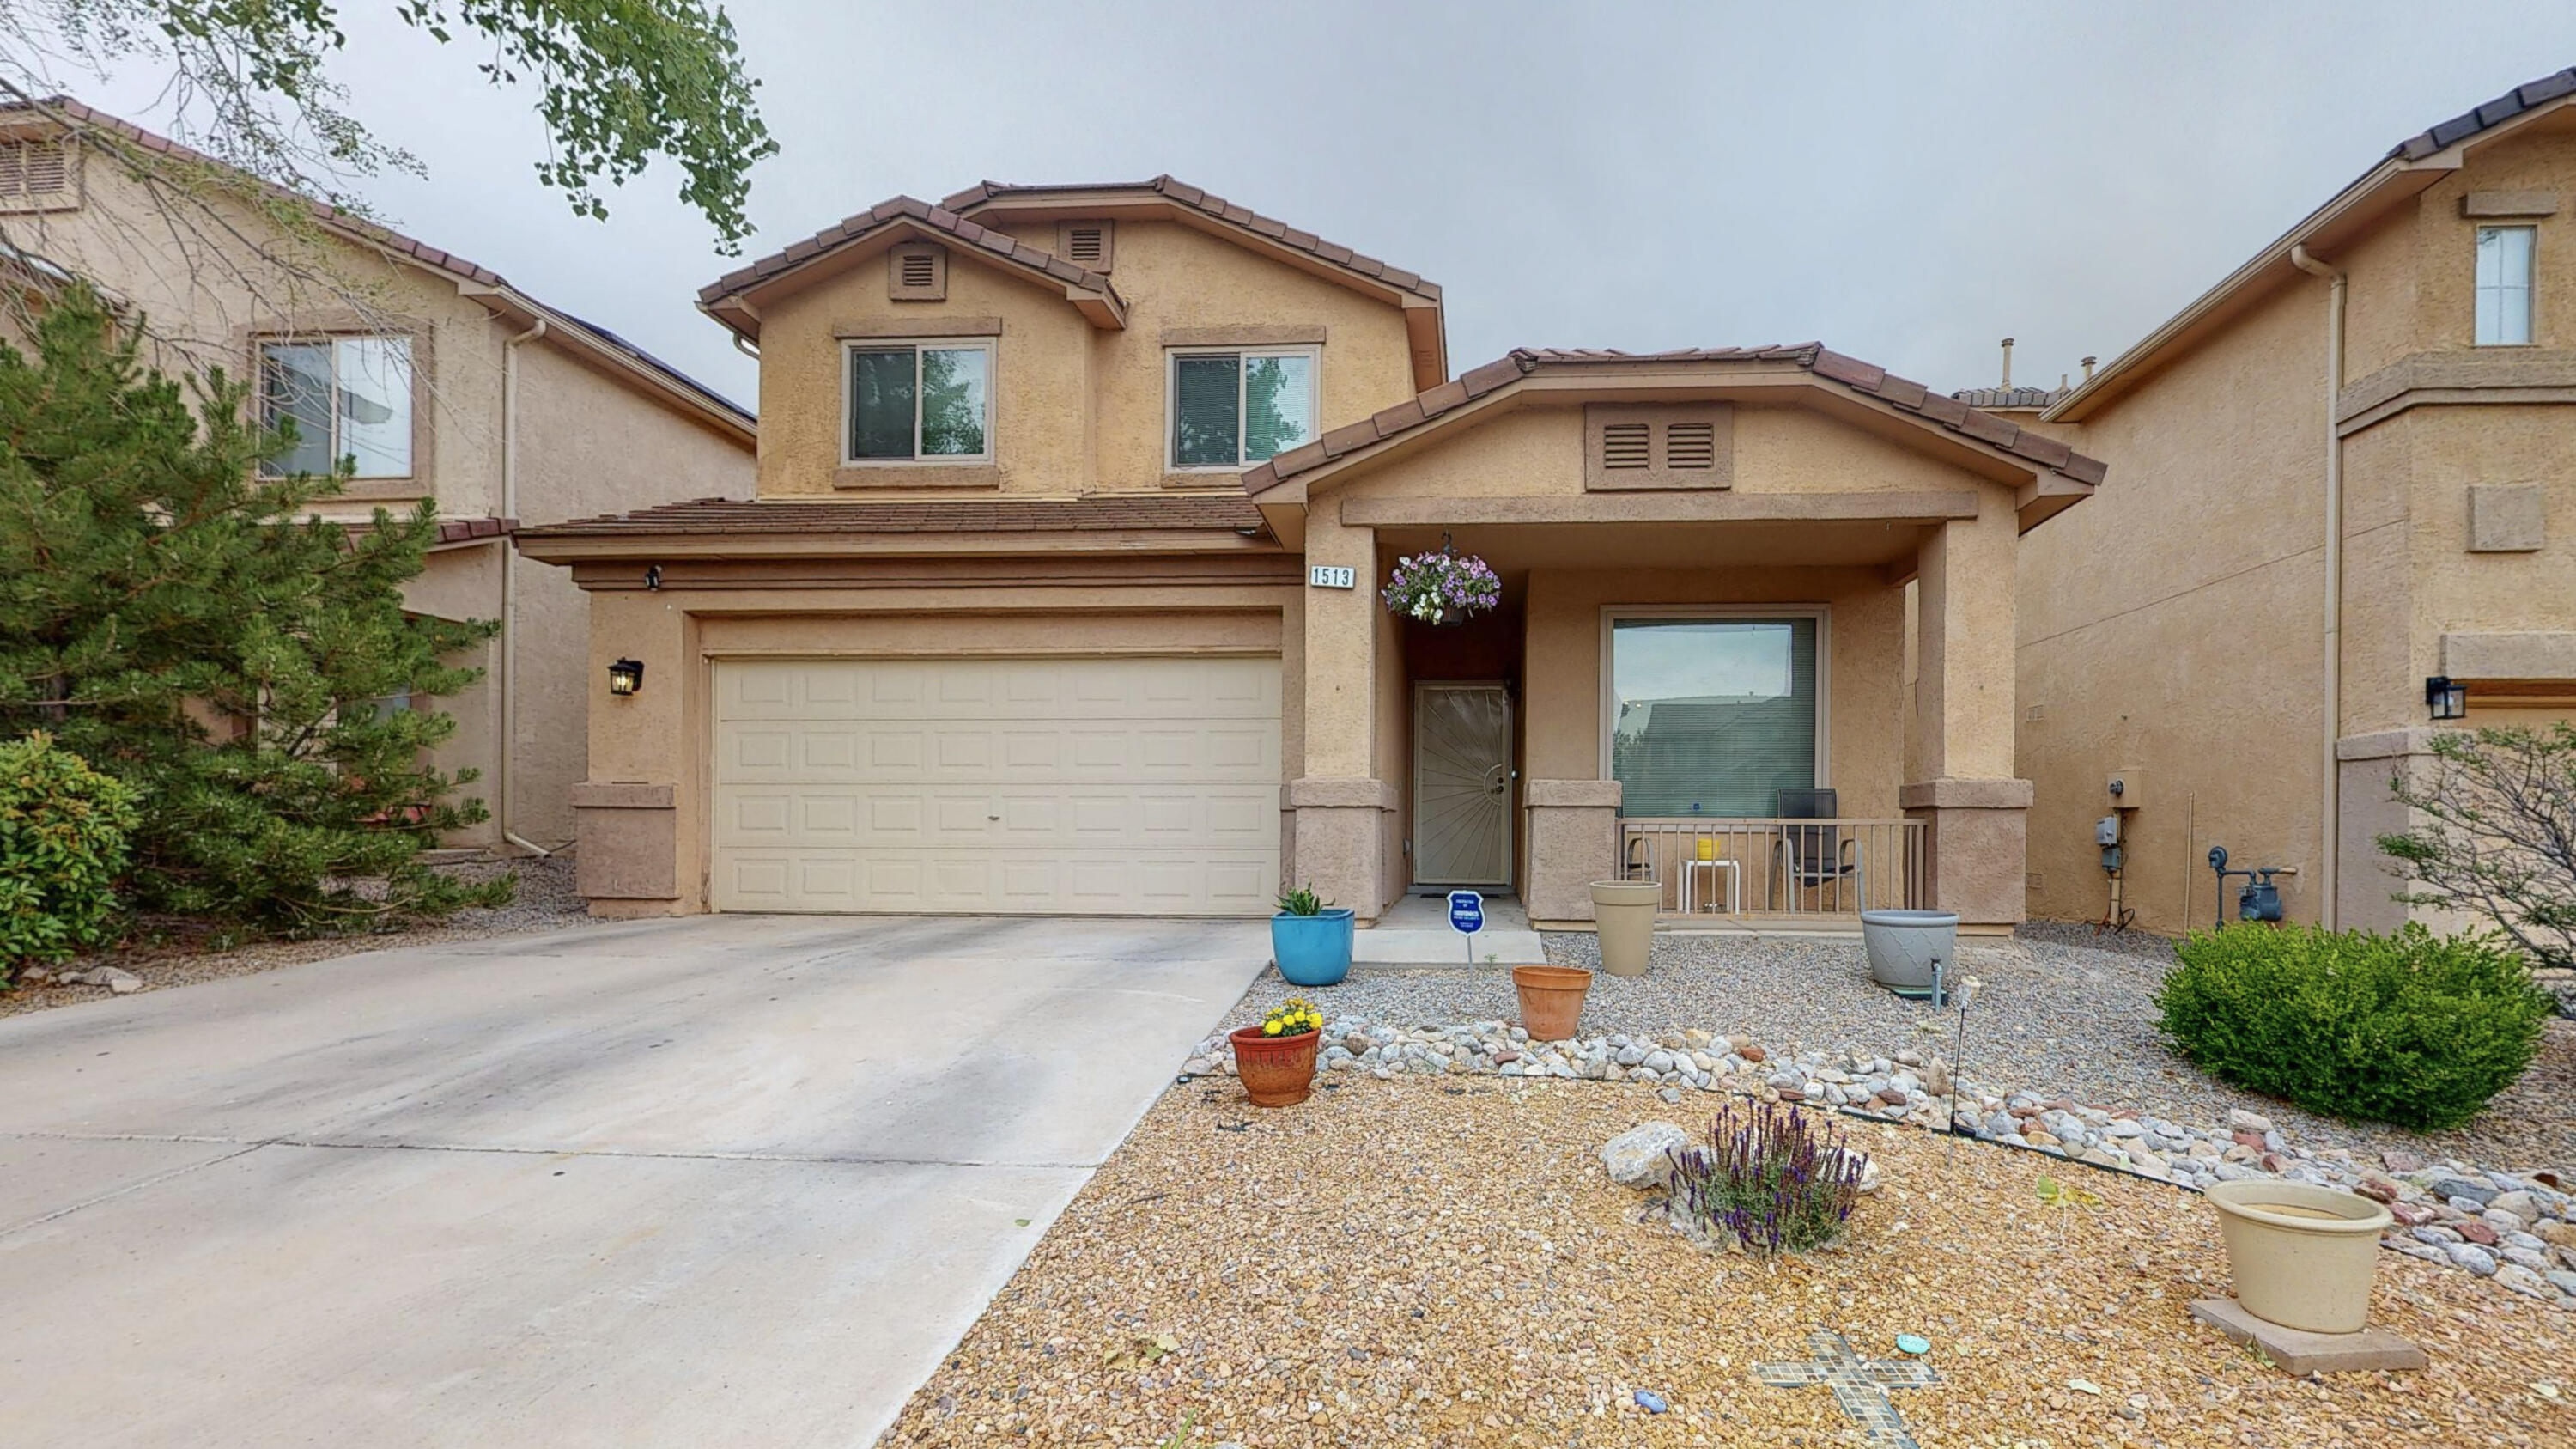 Just in time for Summer! Close to schools, shopping and parks. Your search stops here! Come see this beautiful spacious three bedroom, two and a half bath two story move-in ready gem! Located within the gorgeous sought after Cabezon Community!